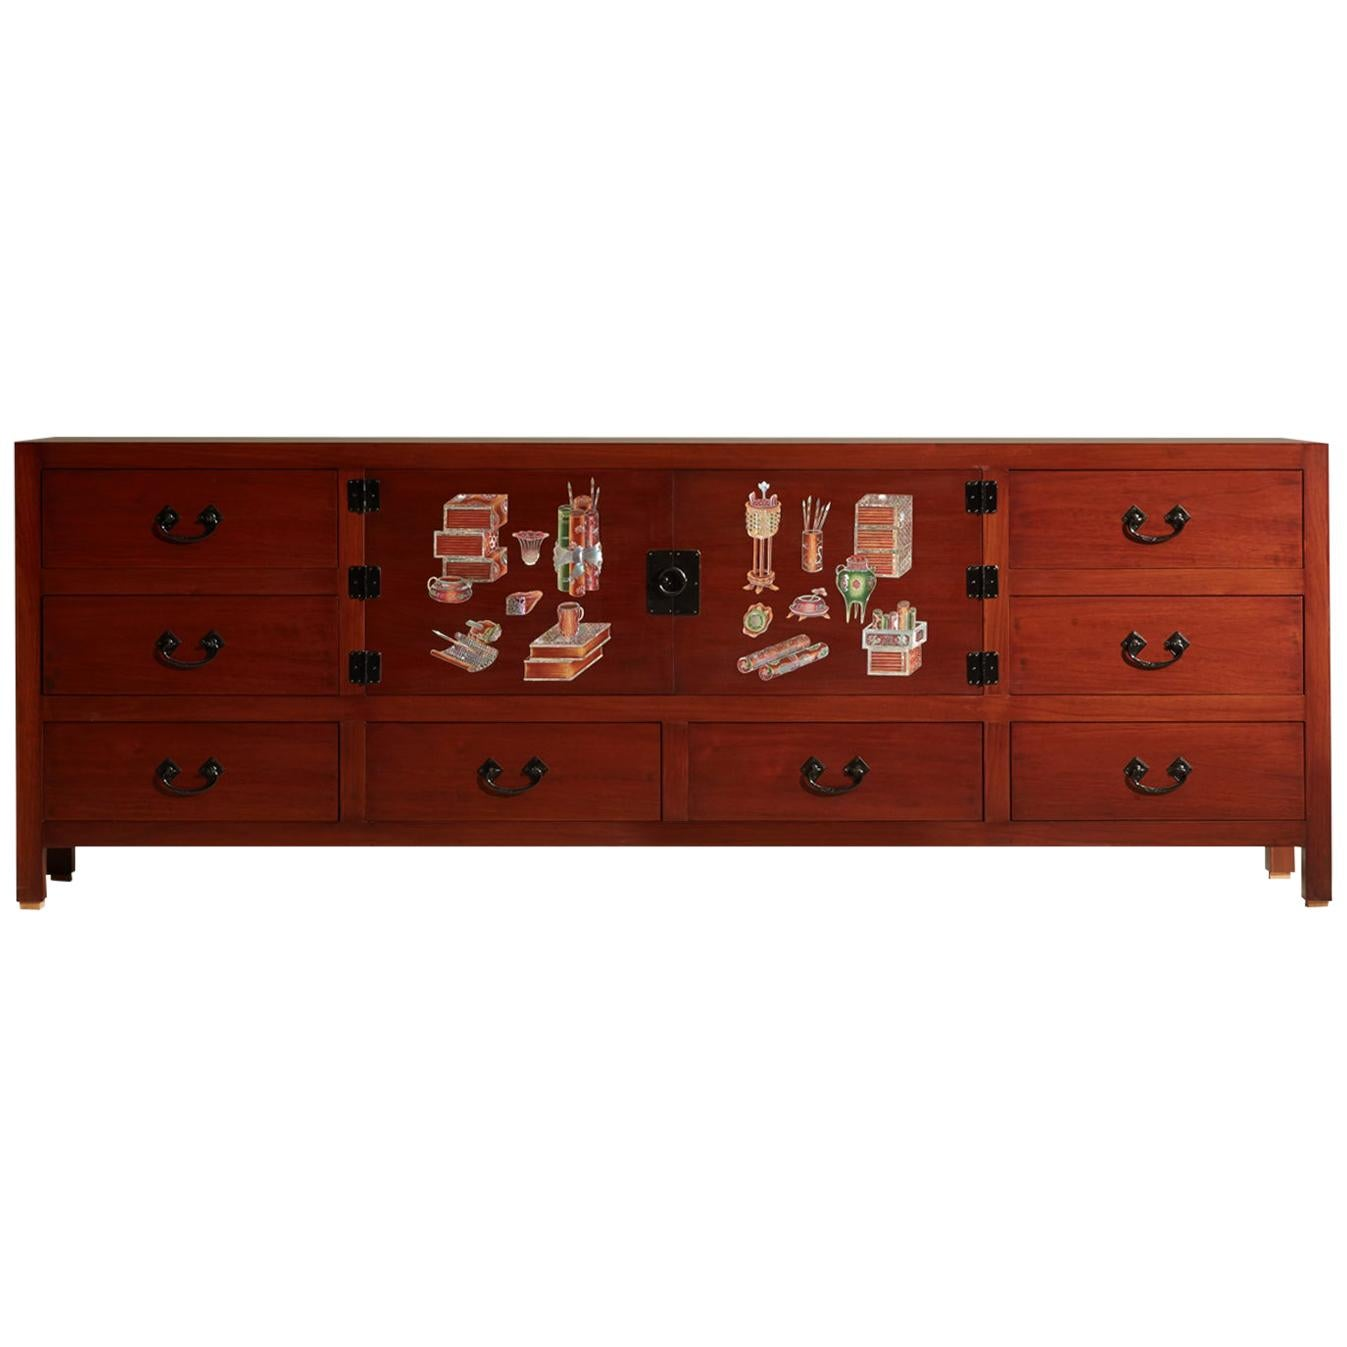 Modern Mother of Pearl Wood Sideboard with Oriental Design by Arijian